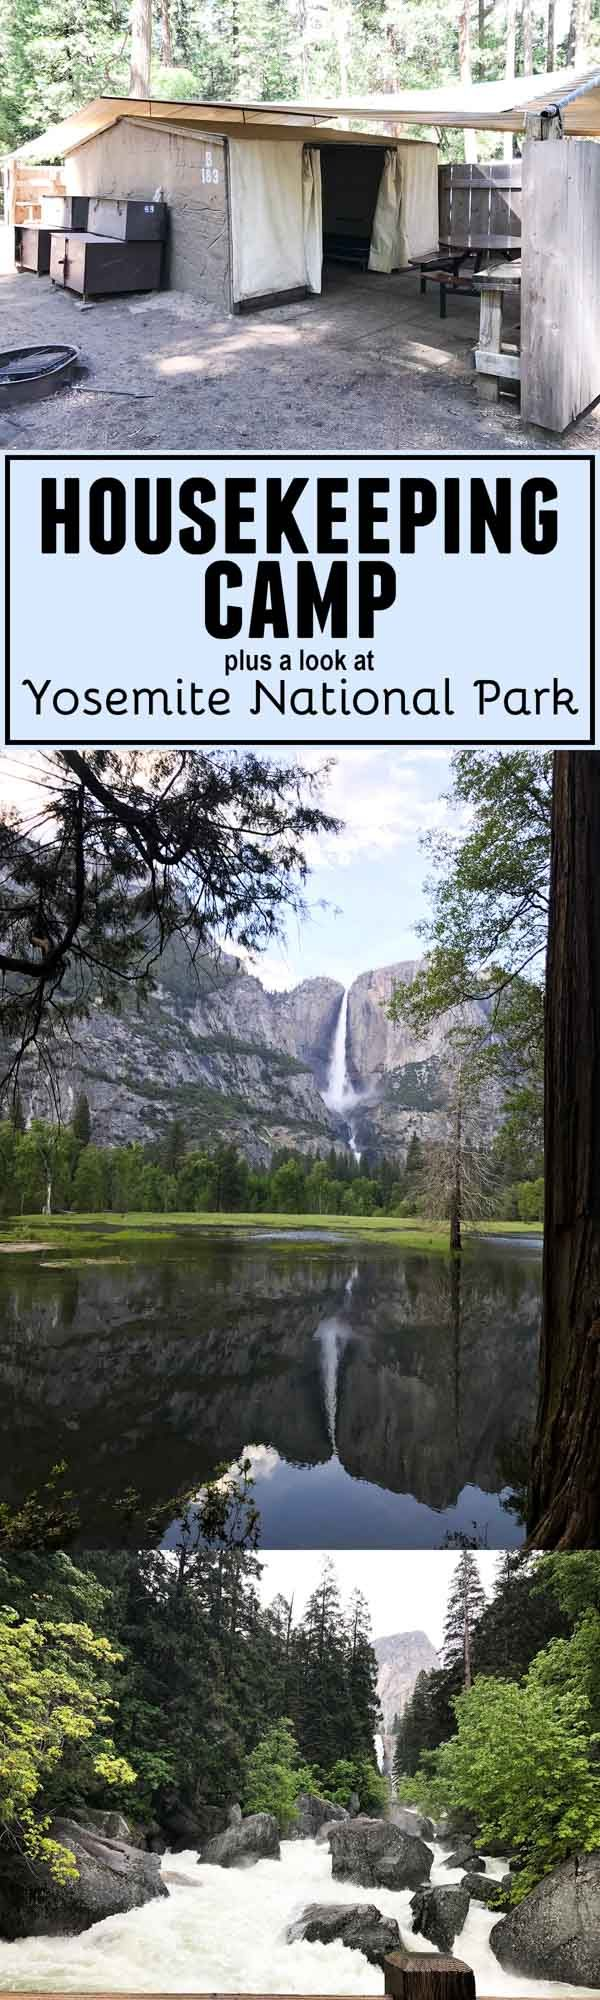 A look at Housekeeping Camp at Yosemite National Park - the good and the bad. Plus what to see and do at Yosemite National Park (even with kids!)